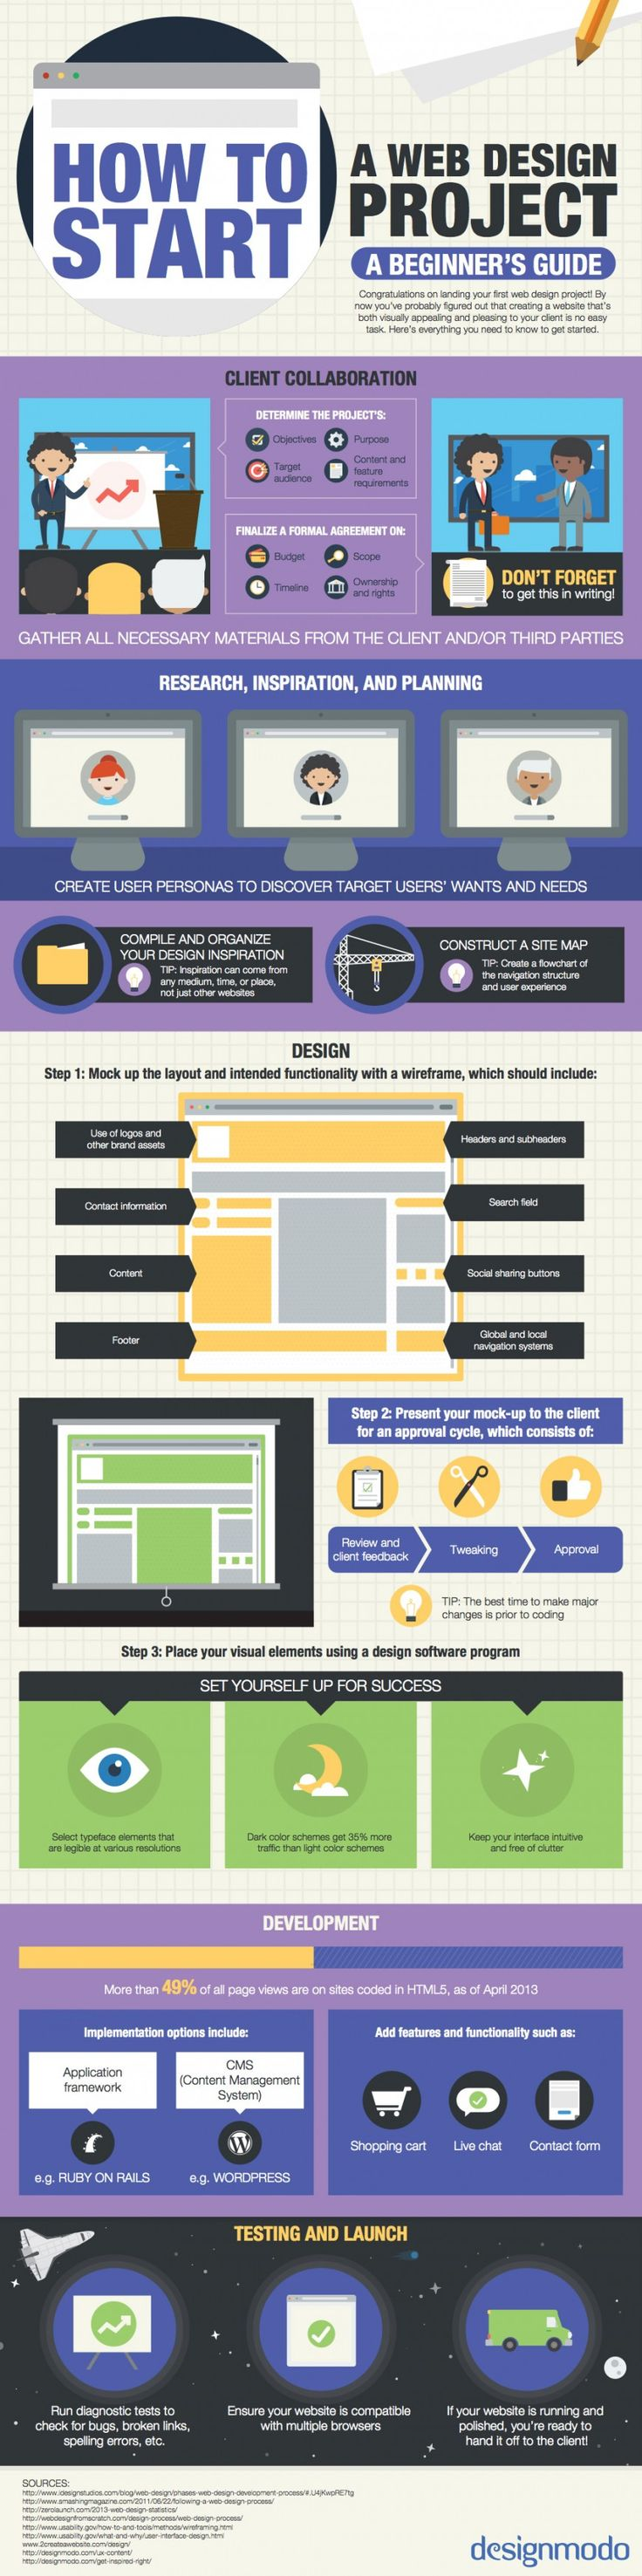 How to Start a Web Design Project: A Beginner\'s Guide [INFOGRAPHIC ...